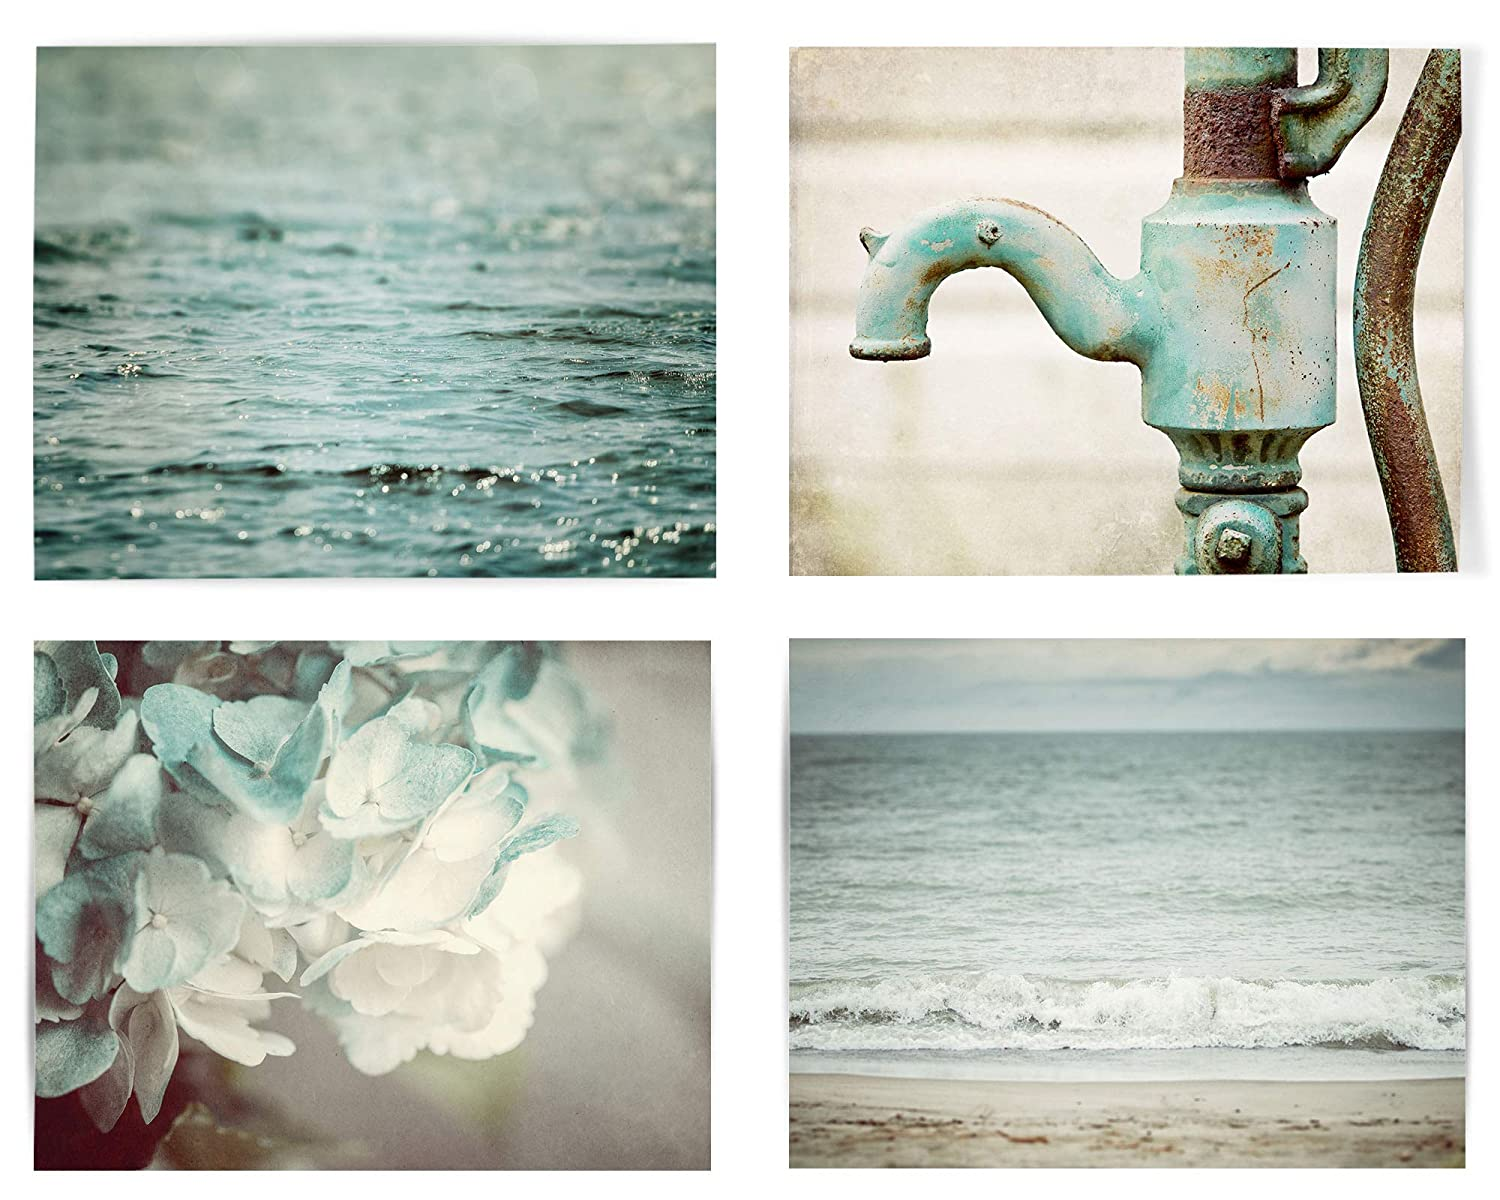 Shabby Chic Aqua, Blue, Teal Bathroom Wall Art Decor Set of 4 Photo Prints (Not Framed). Rustic Farmhouse Beach and Floral Pictures. (4 5x7 Prints Only)